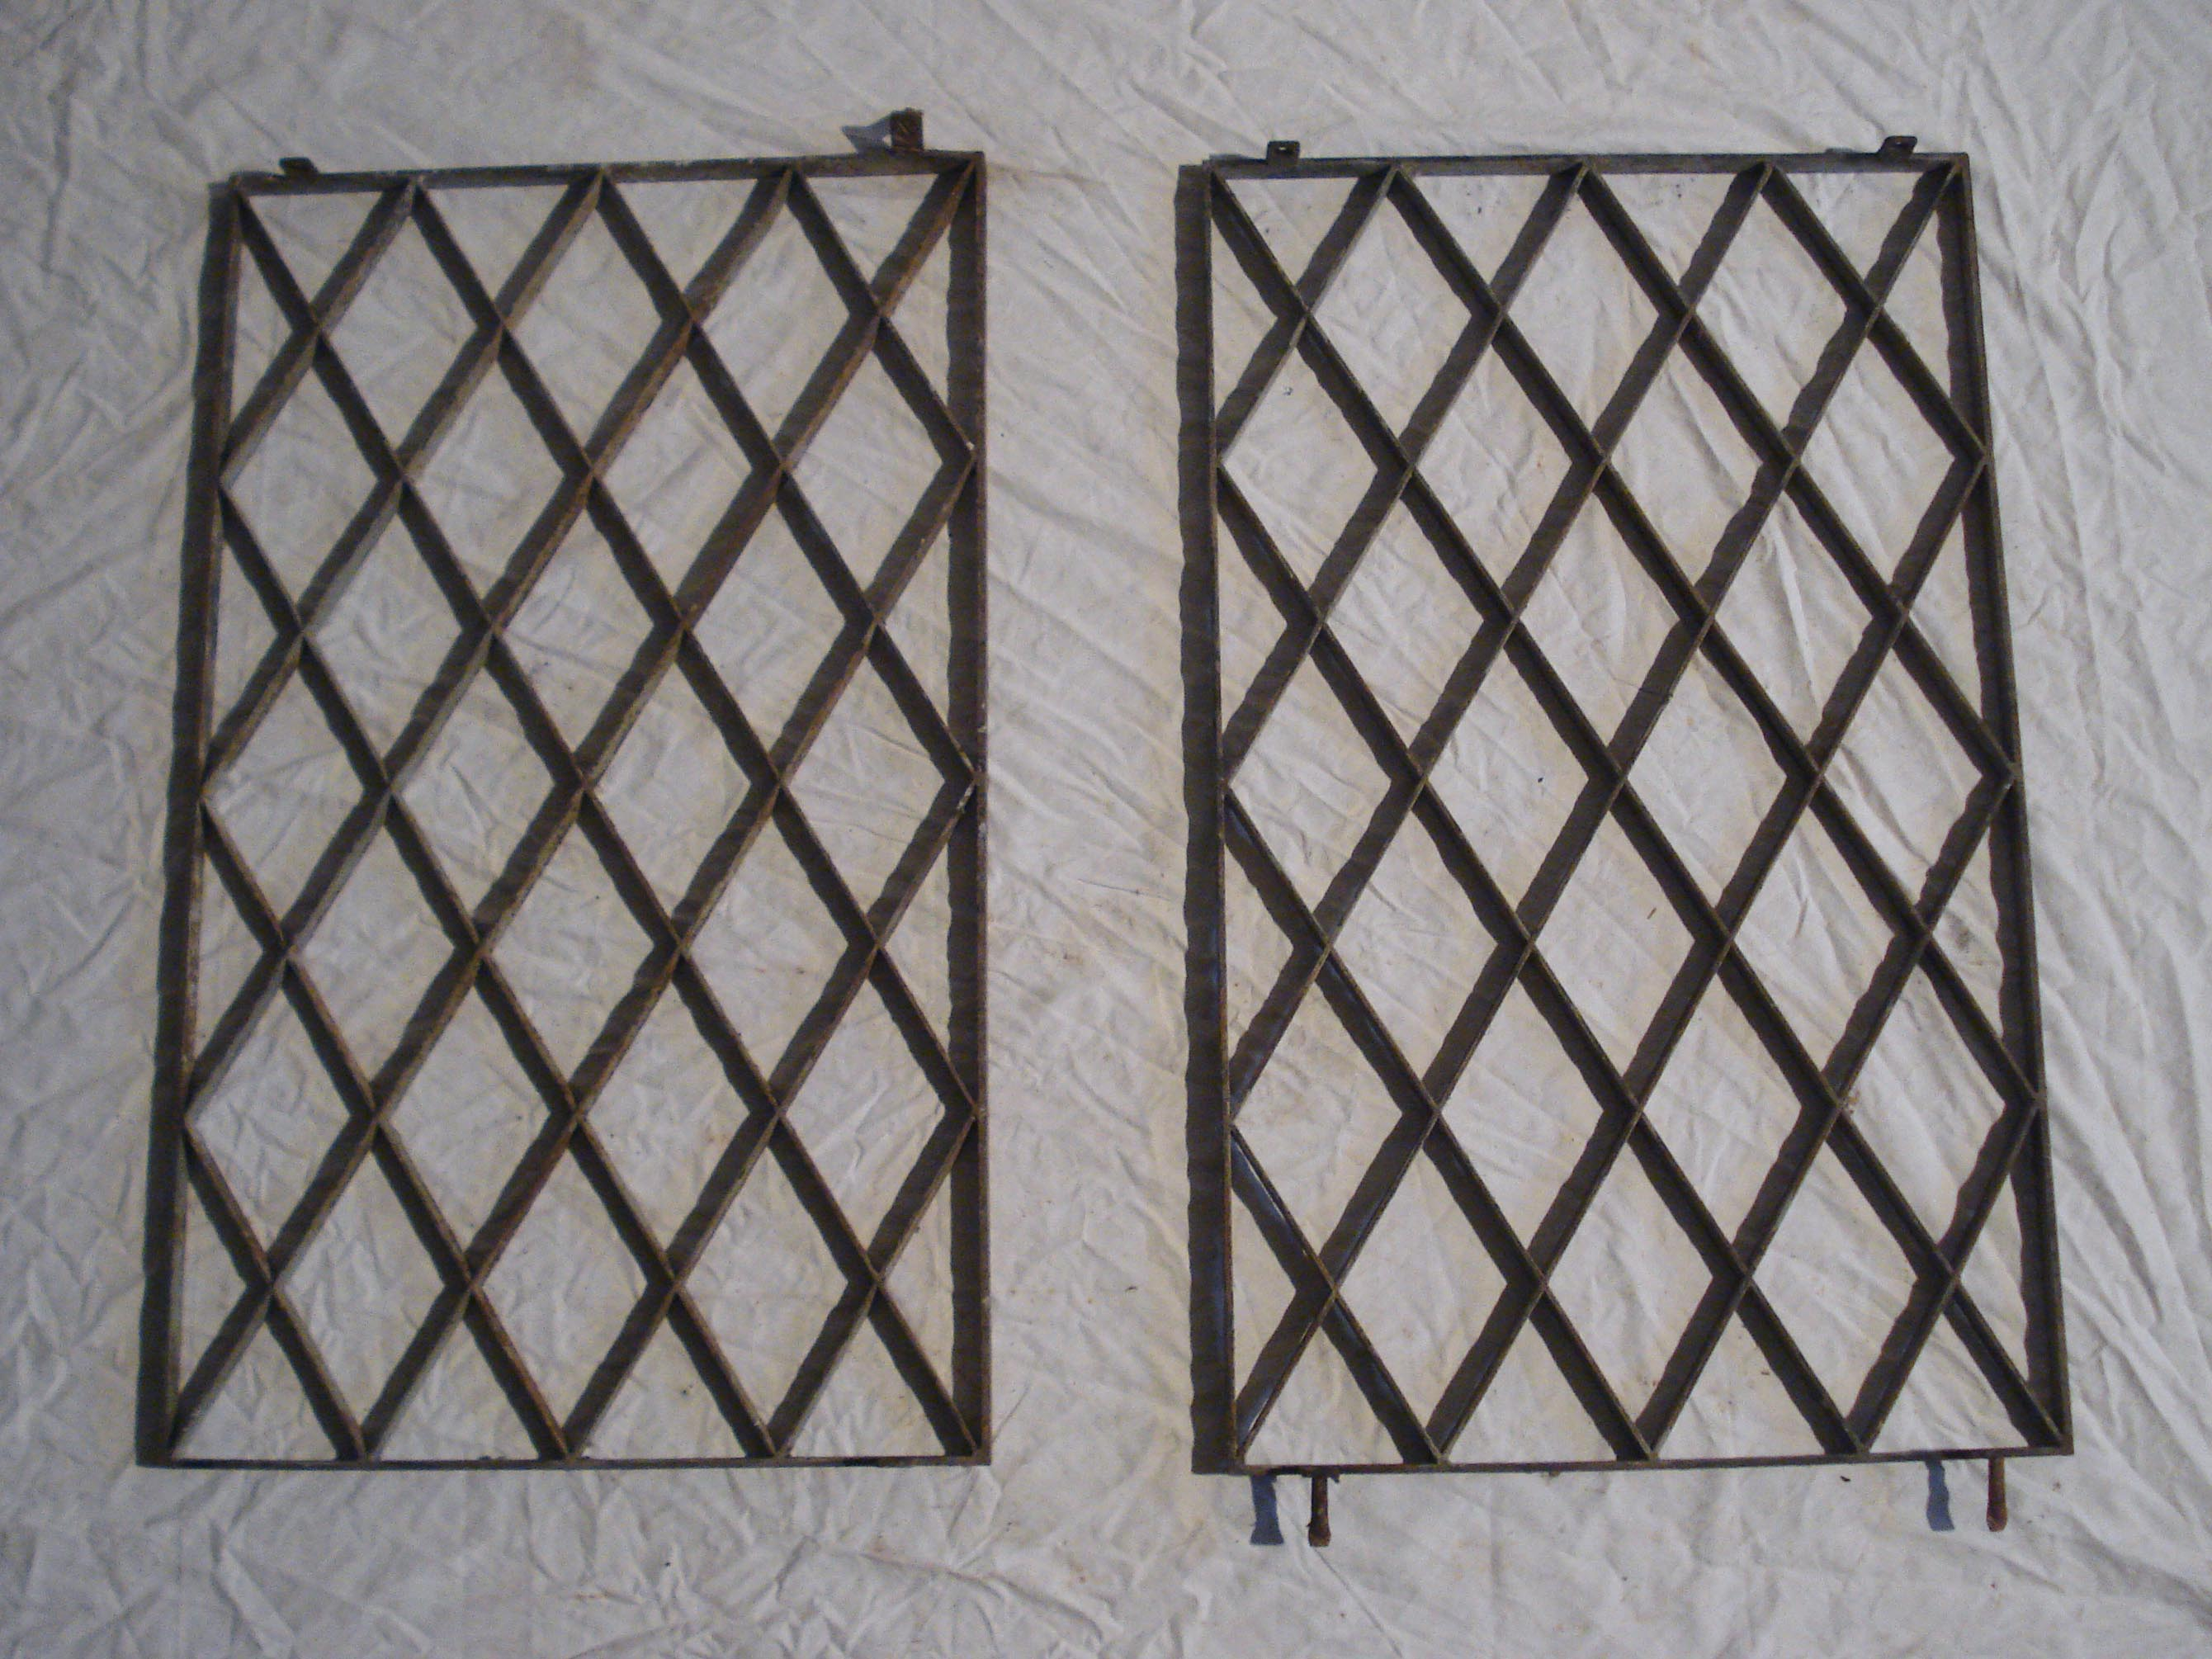 Grilles de protection de fen tres anciennes for Fenetre losange